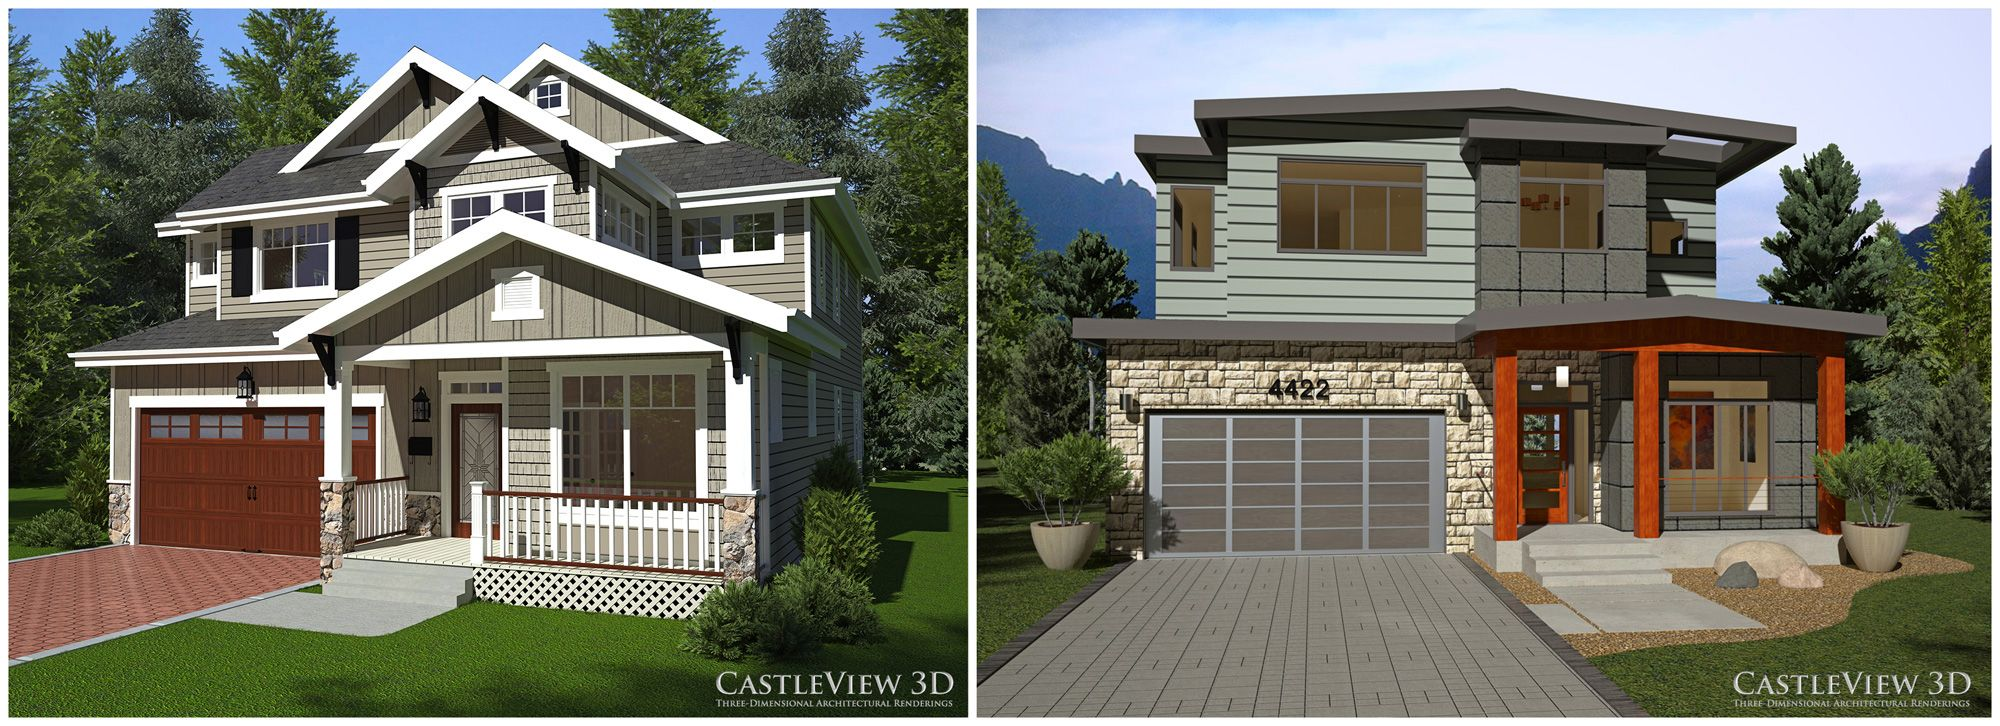 Two 3D renderings of a house one Craftsman and one Modern